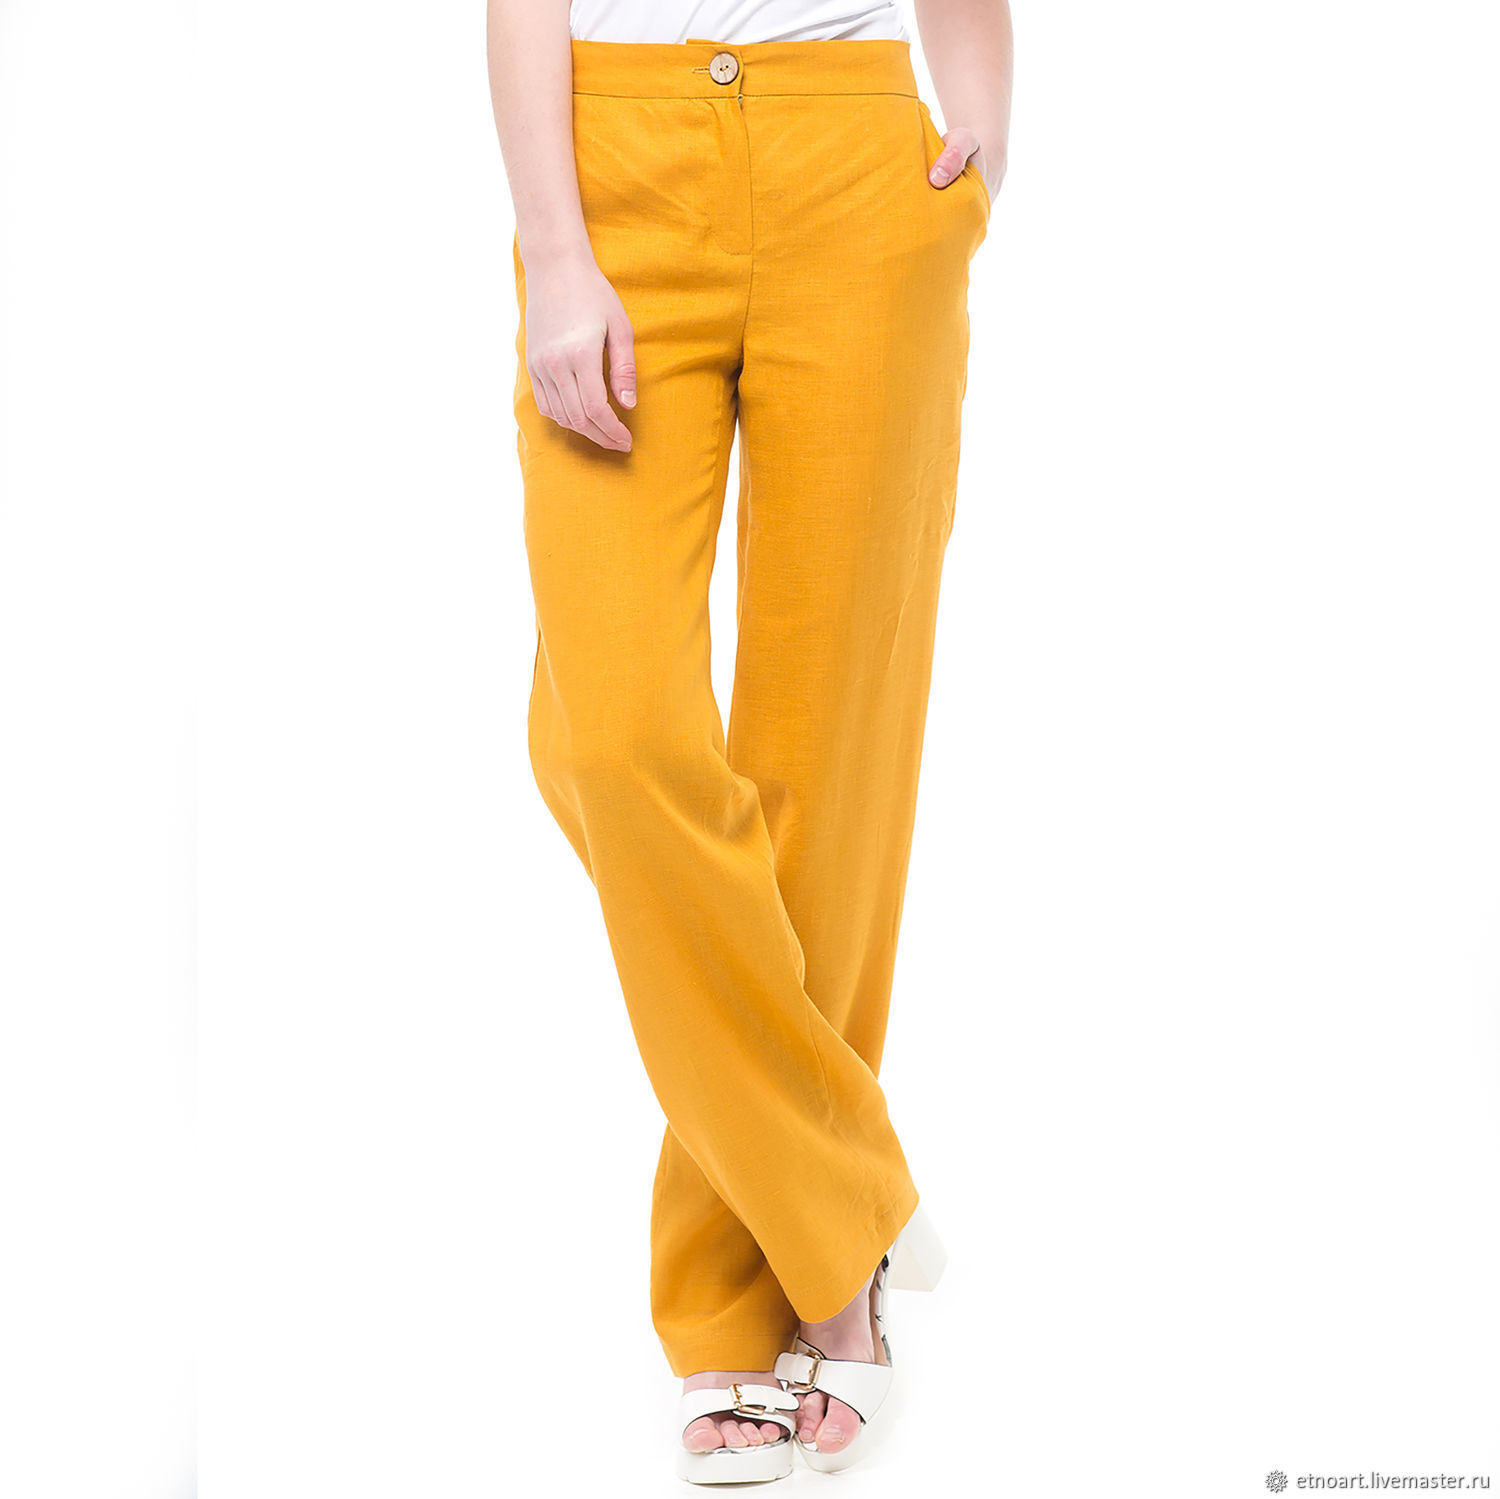 Trousers linen basic amber color, Pants, Tomsk,  Фото №1